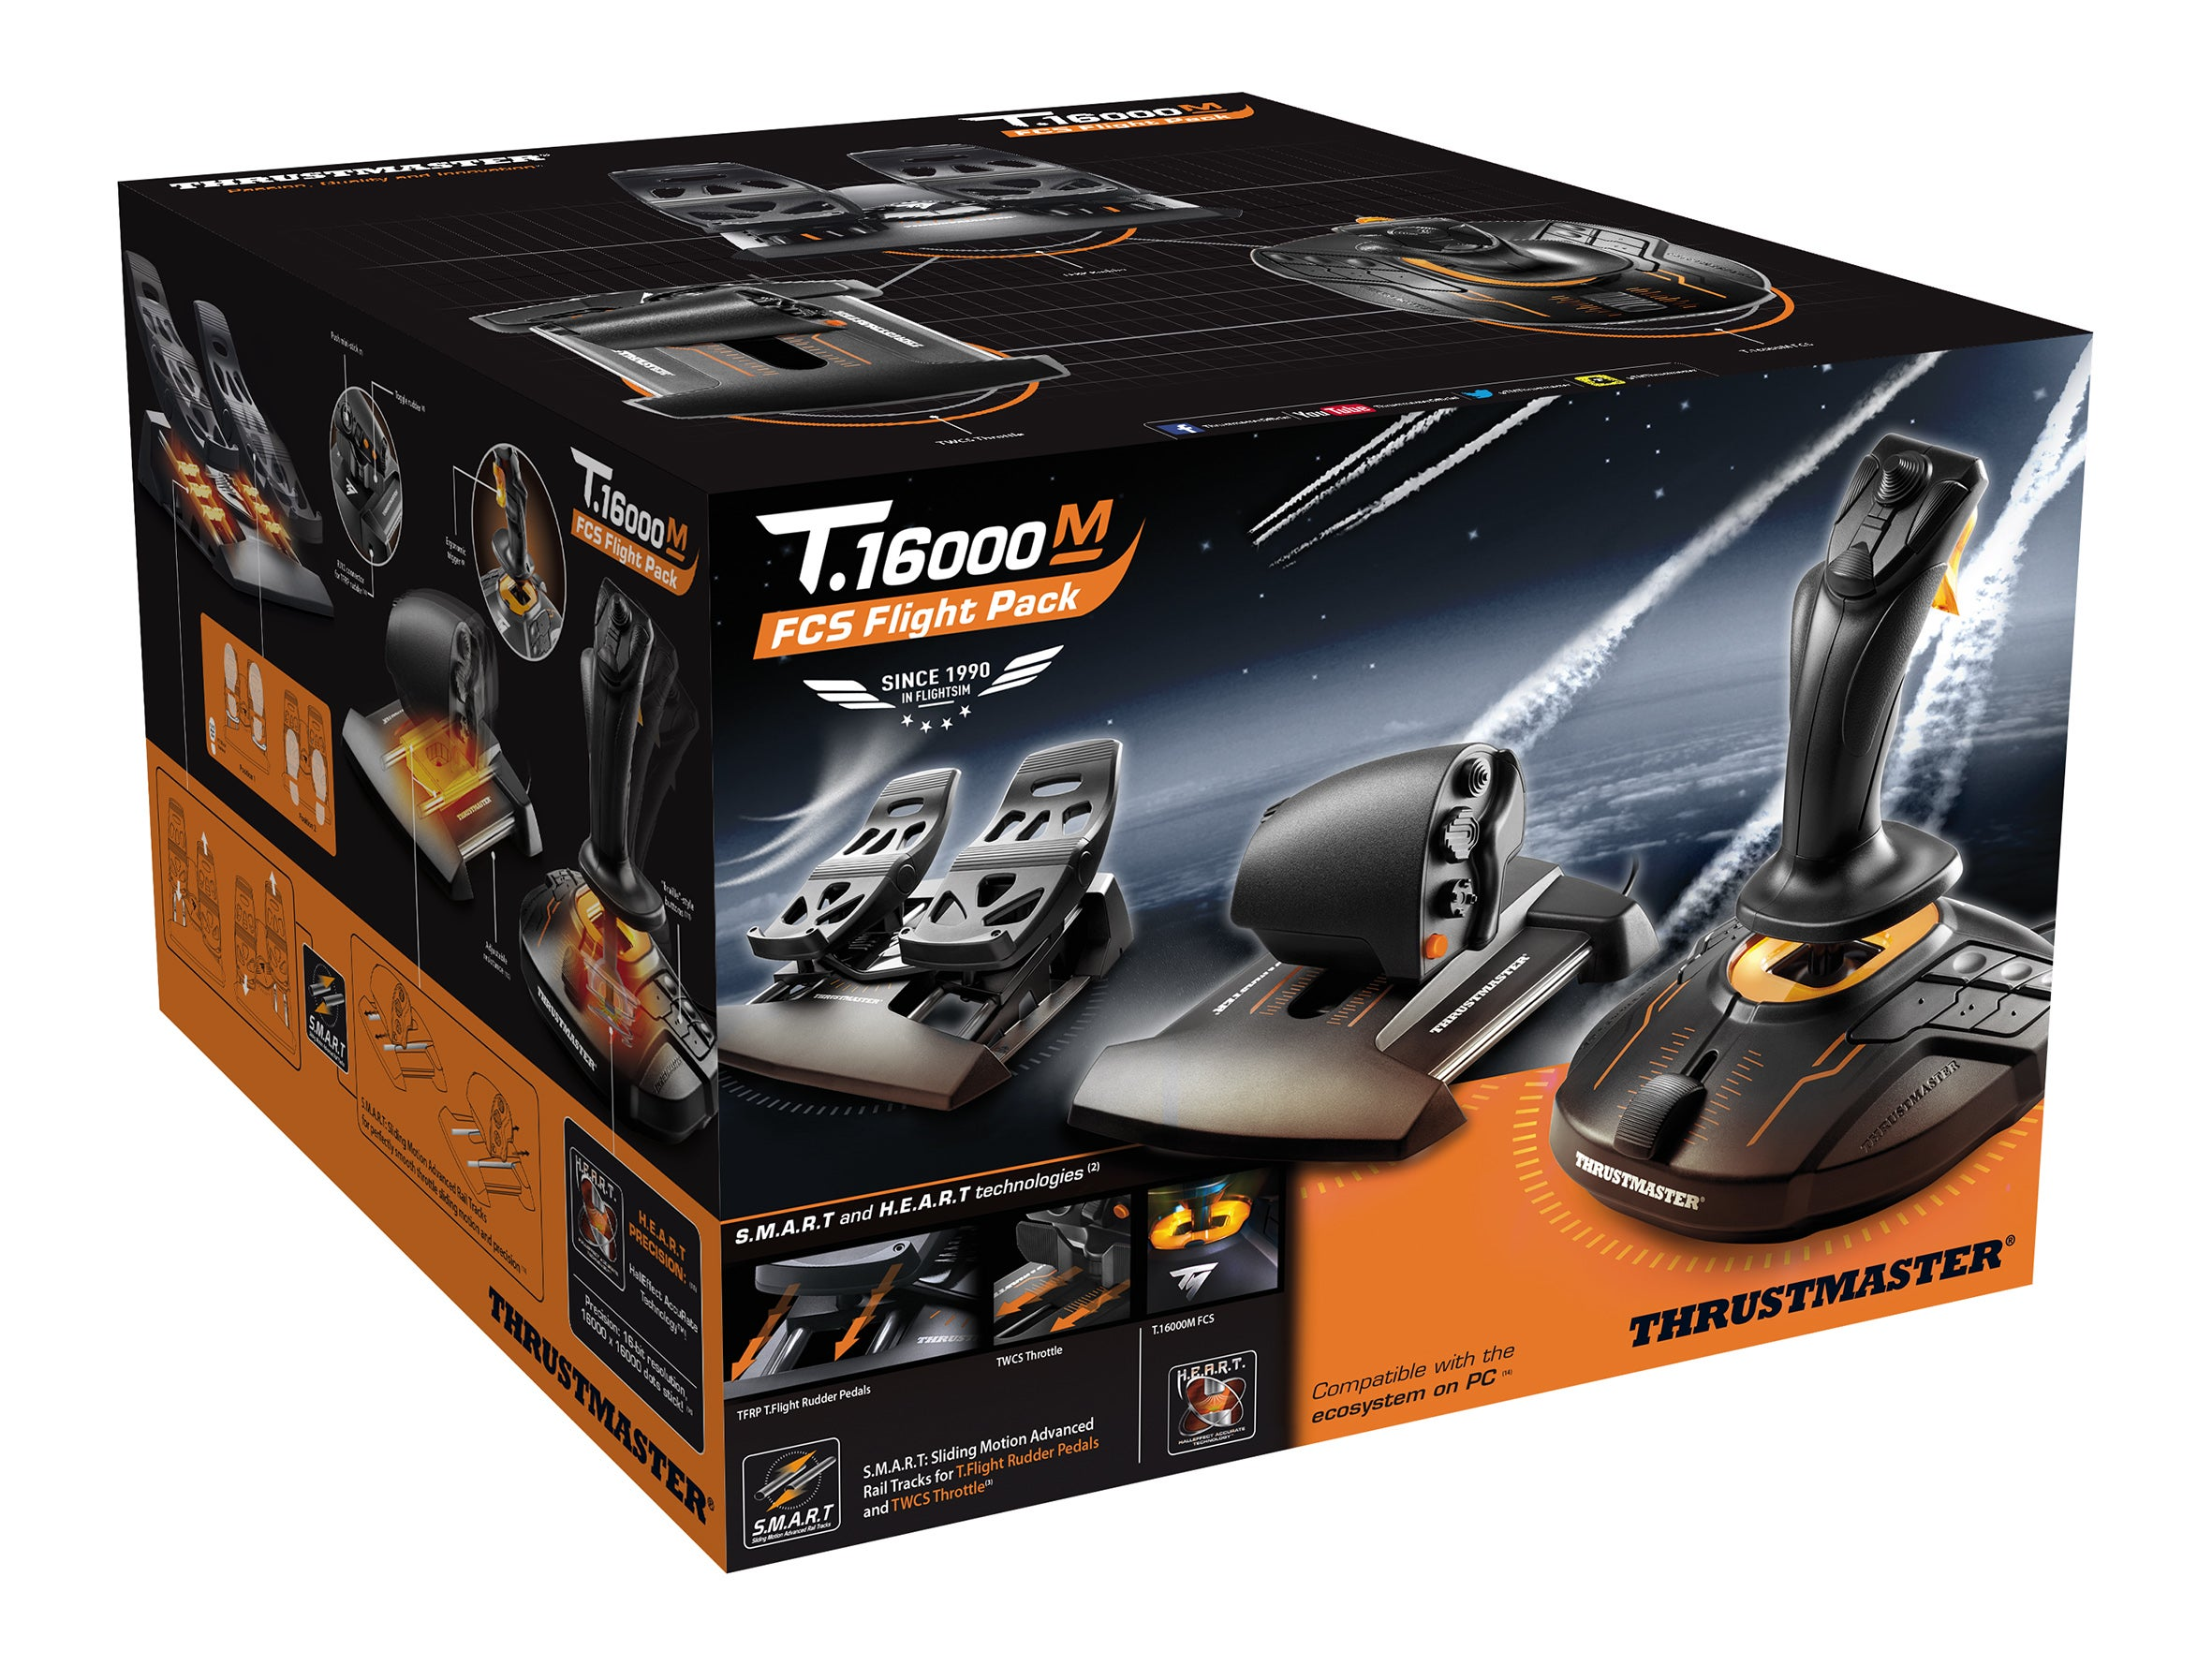 Thrustmaster T 16000M FCS Flight Pack Review: PC Aviation